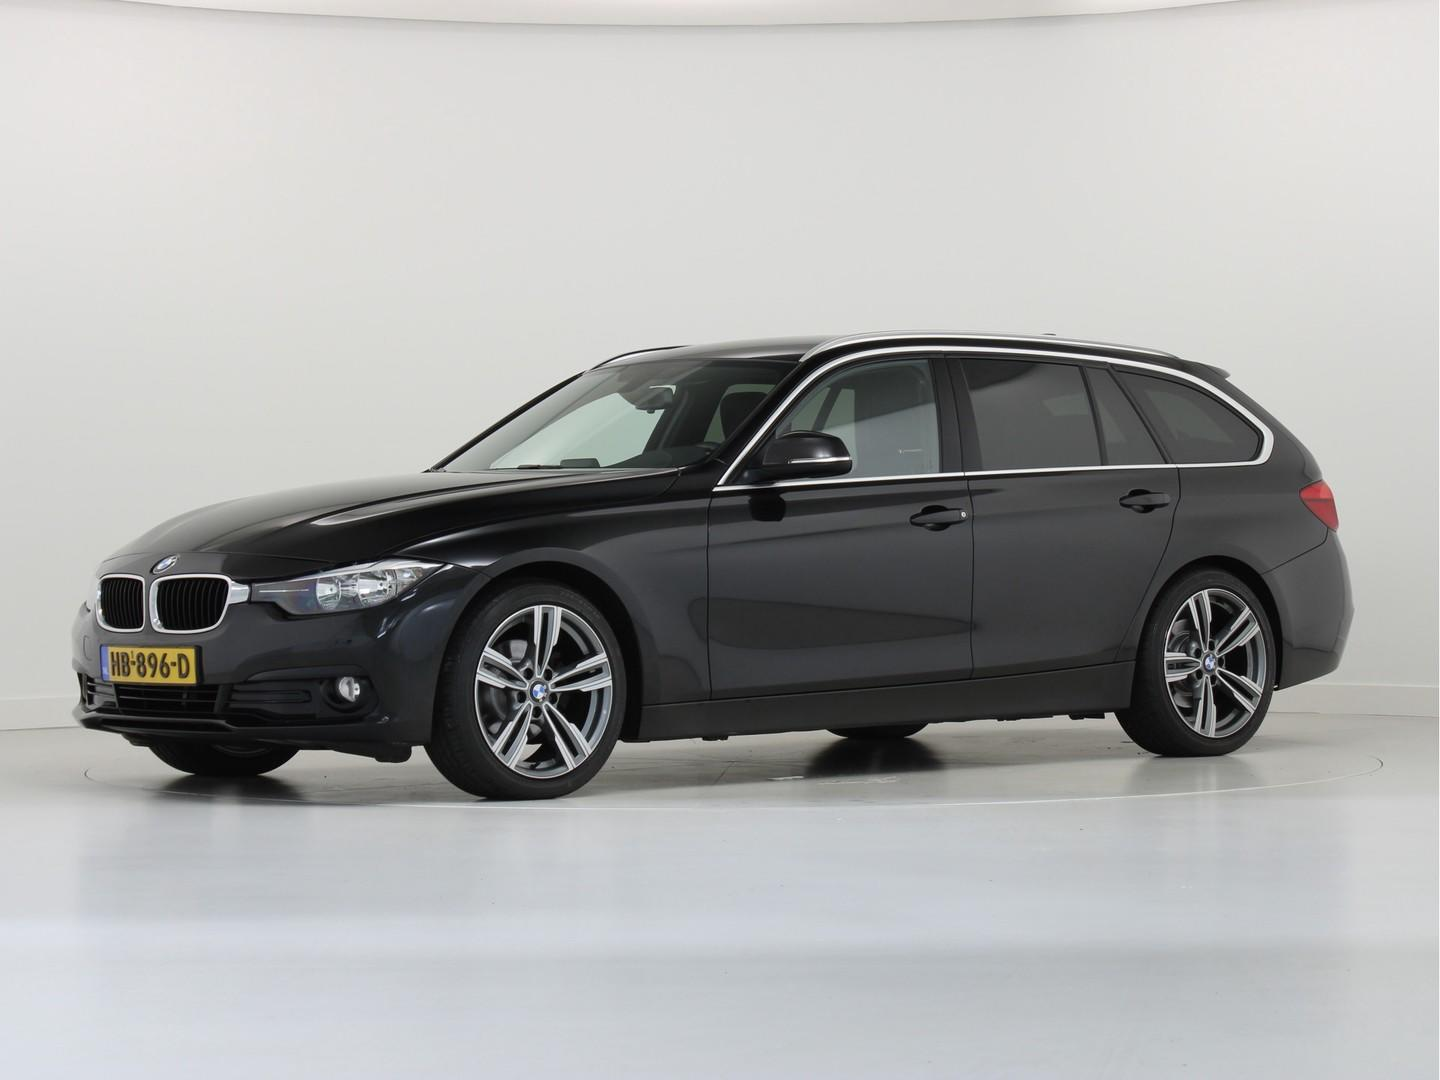 Bmw 3 serie 320d 164 pk steptronic-8 touring corporate lease sport